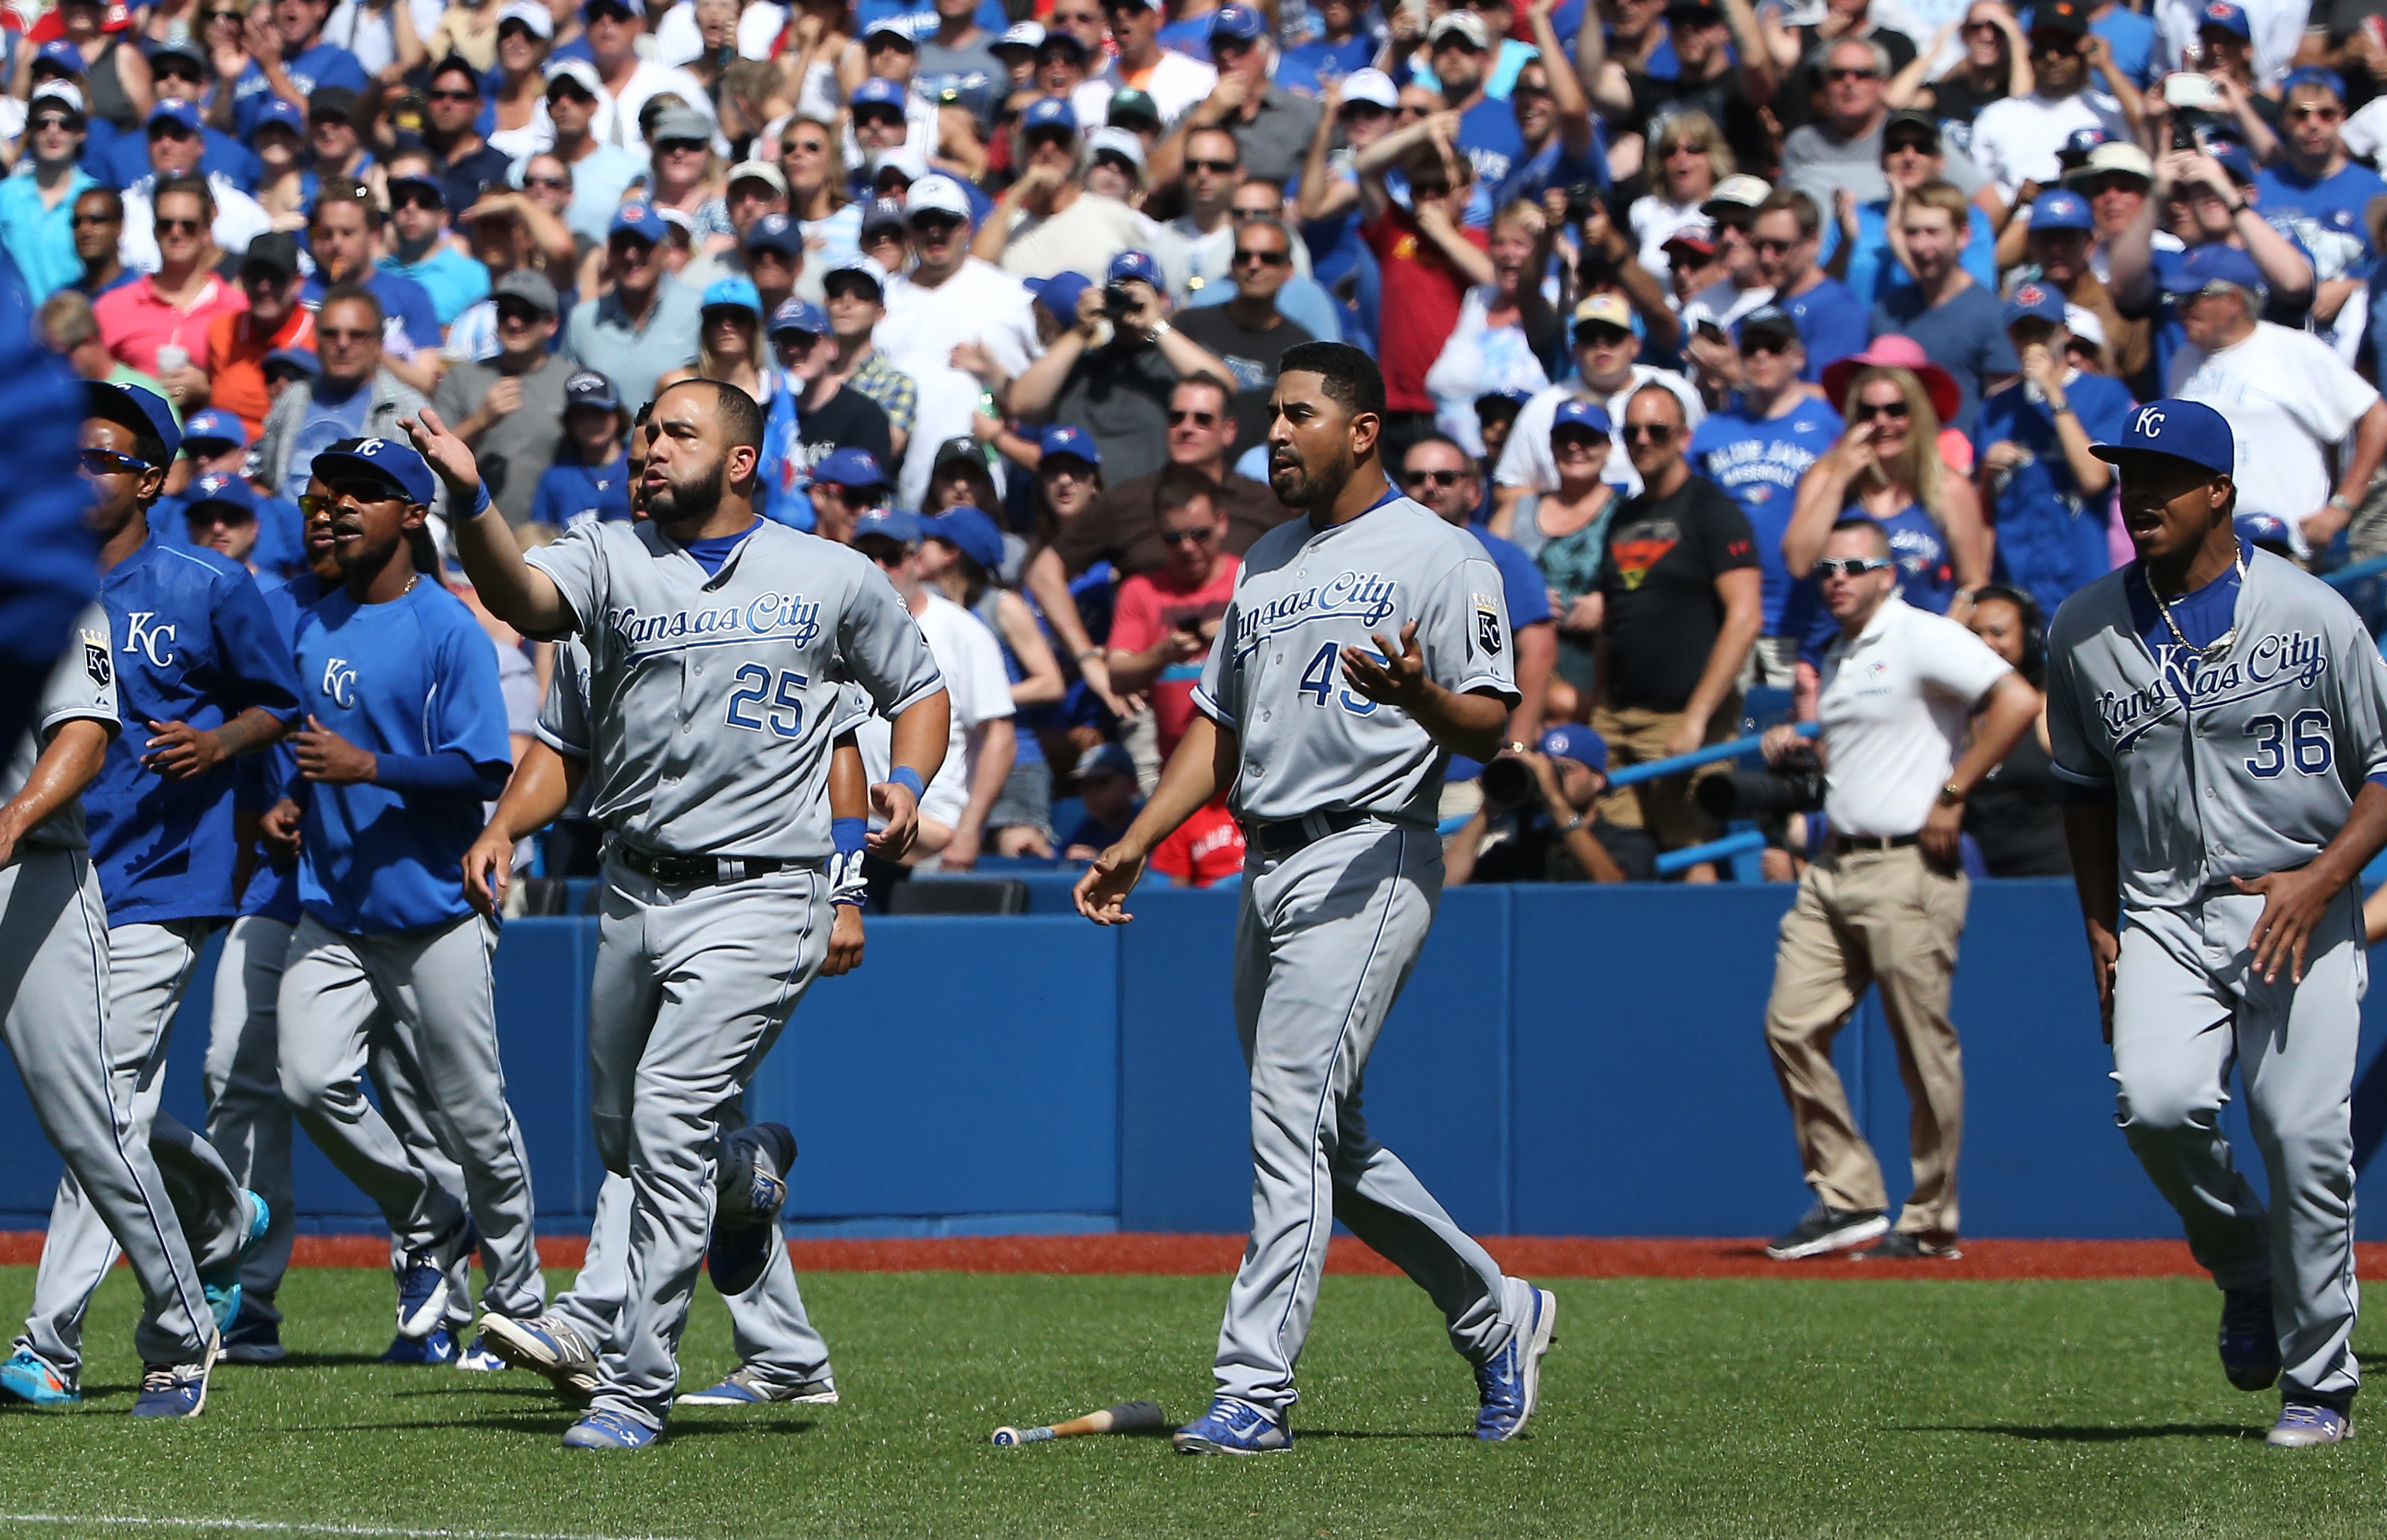 The Royals and Blue Jays kick off a potentially thrilling ALCS